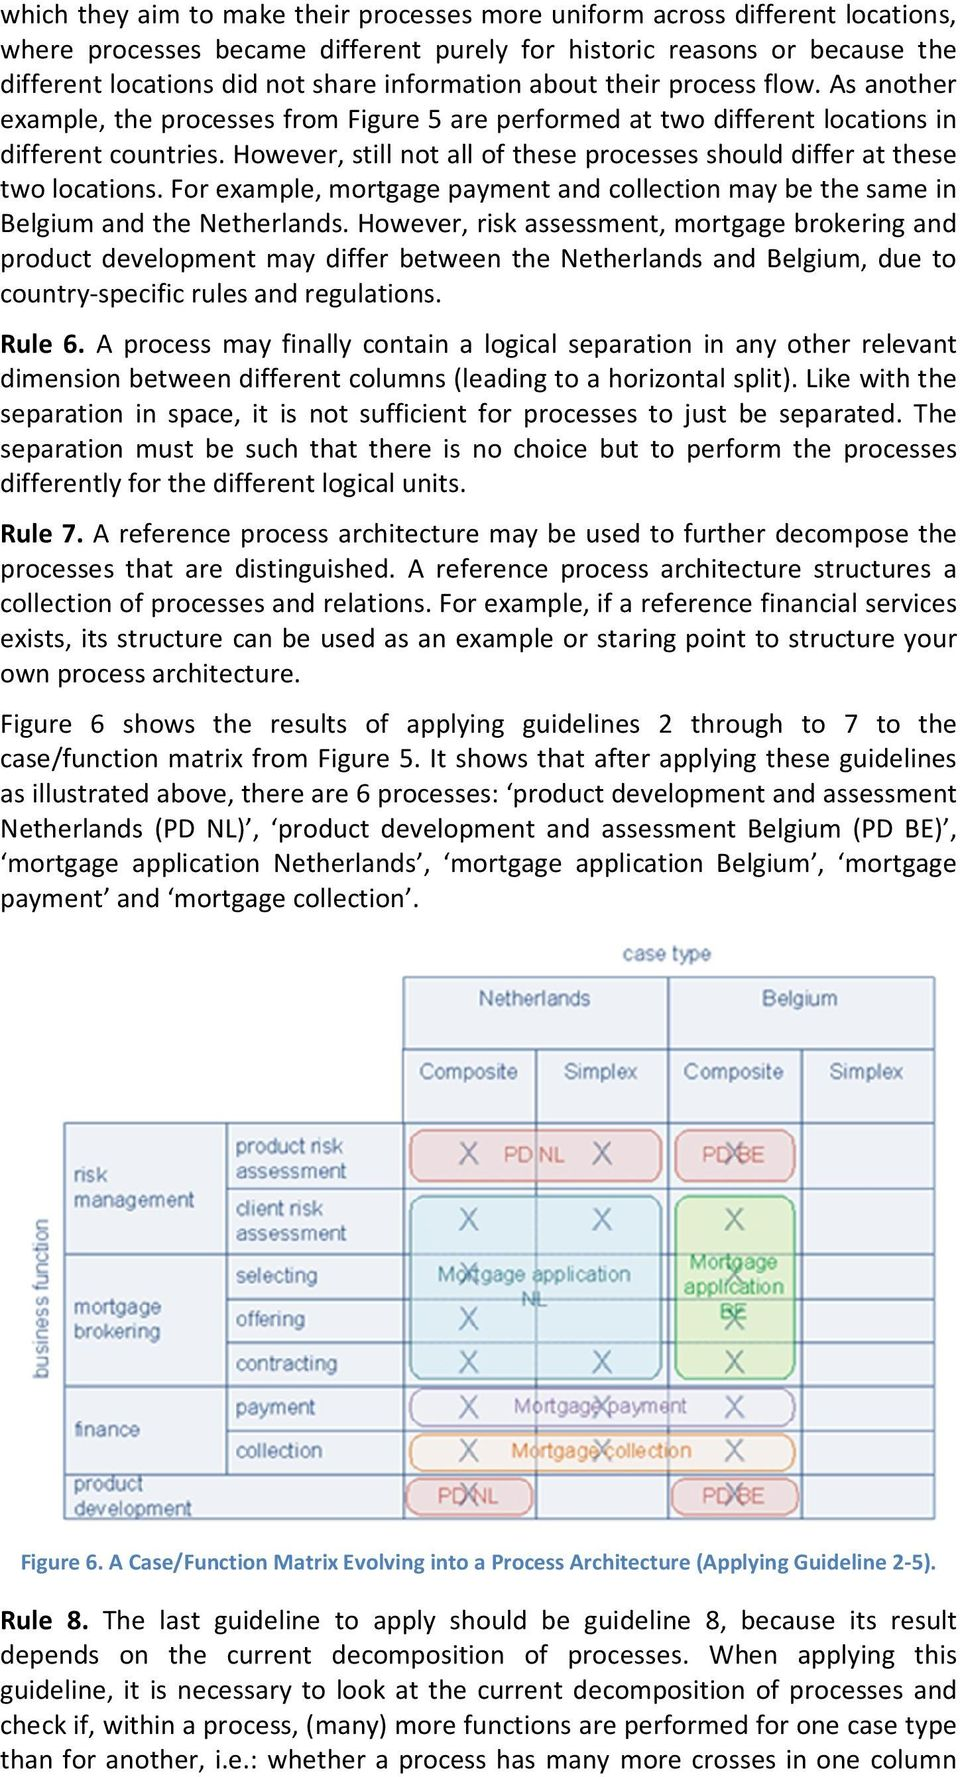 However, still not all of these processes should differ at these two locations. For example, mortgage payment and collection may be the same in Belgium and the Netherlands.